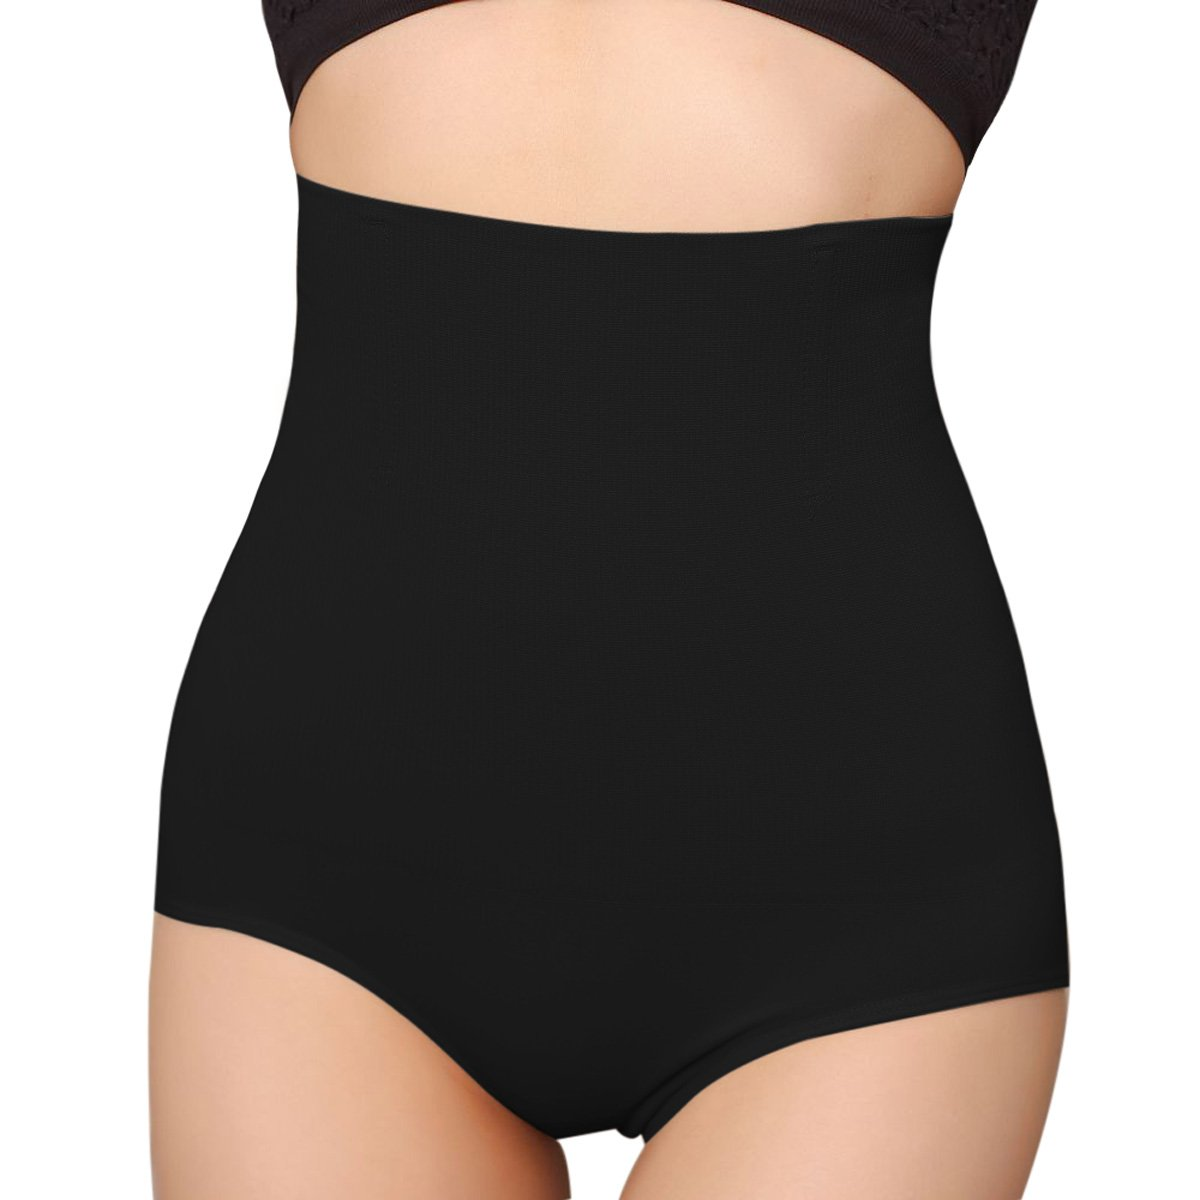 426480a950 iLoveSIA Women s High-Waist Control Knickers with Waist Cincher Shapewear   Amazon.co.uk  Clothing